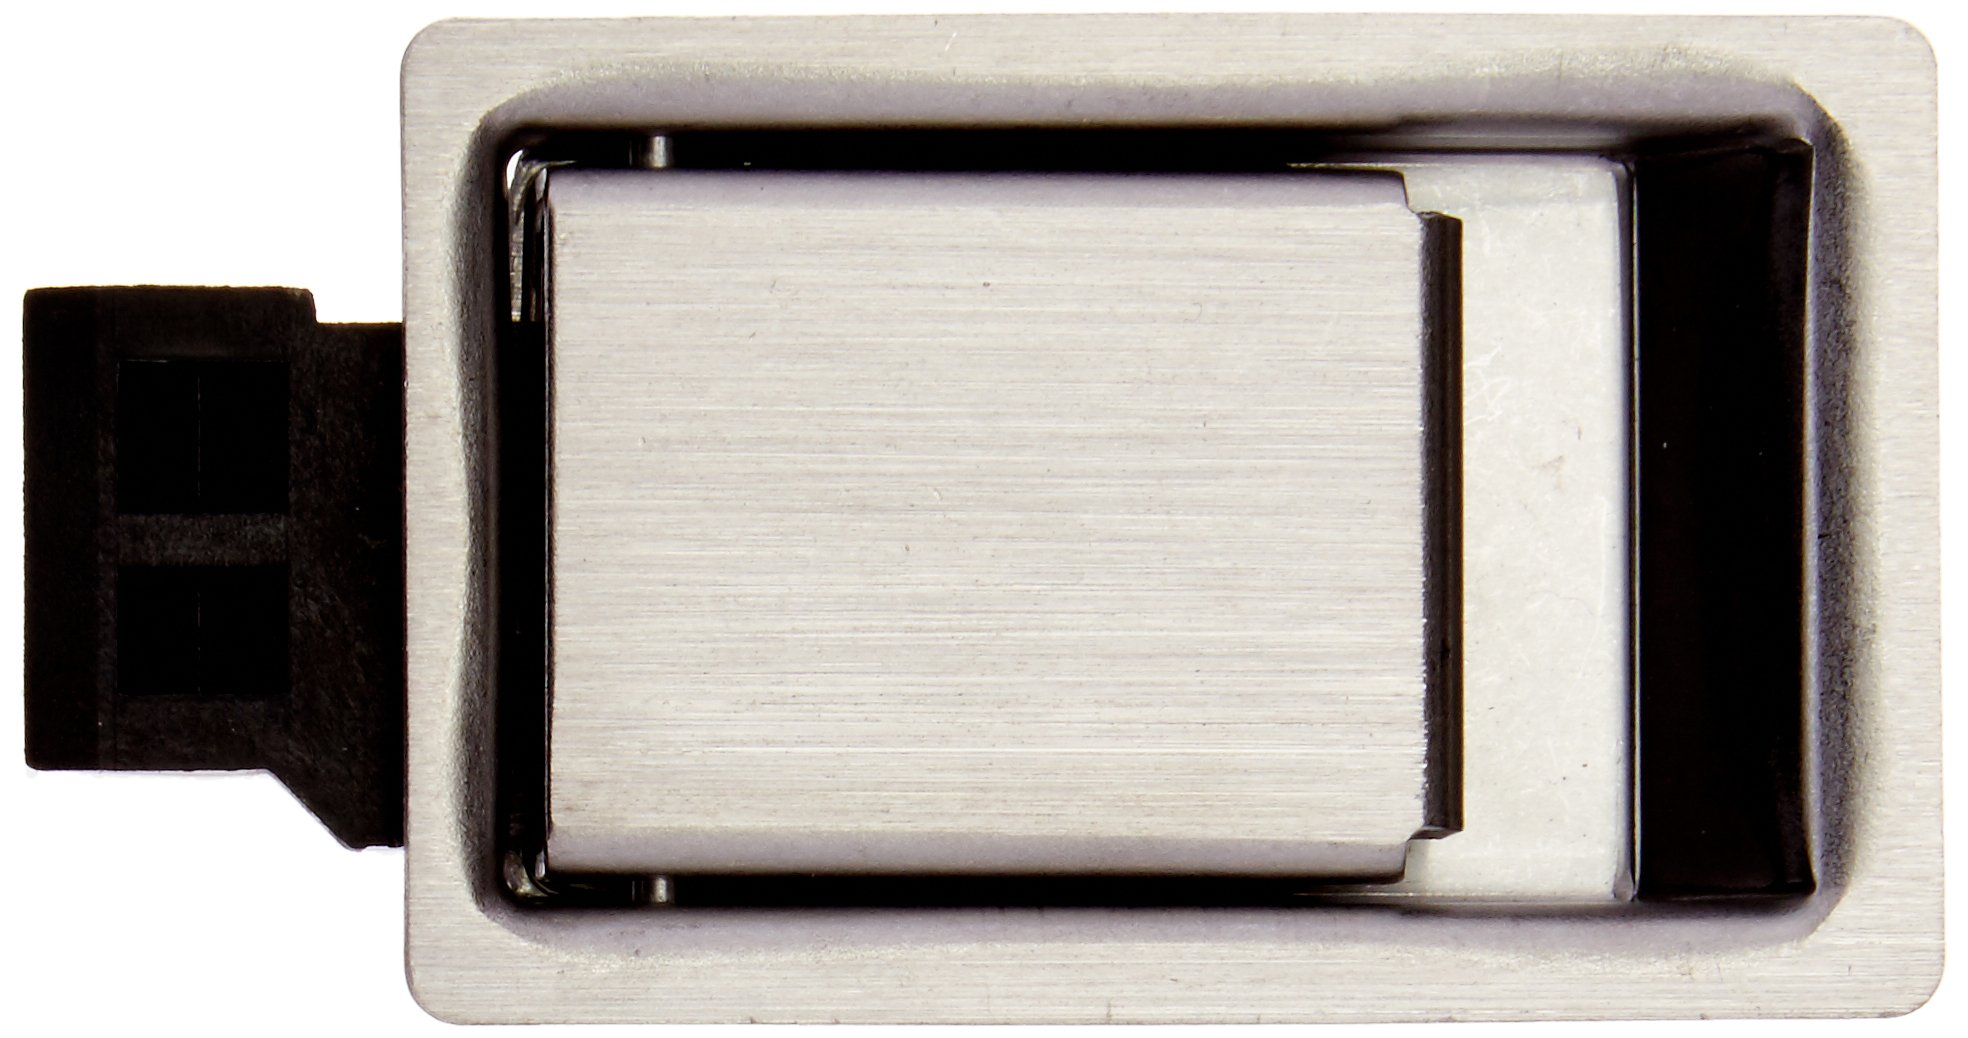 Southco Inc 64-01-10 Miniature Flush Paddle Latch 1.53 Long x .96 W Installation Hole, Southco Flush Paddle Latches